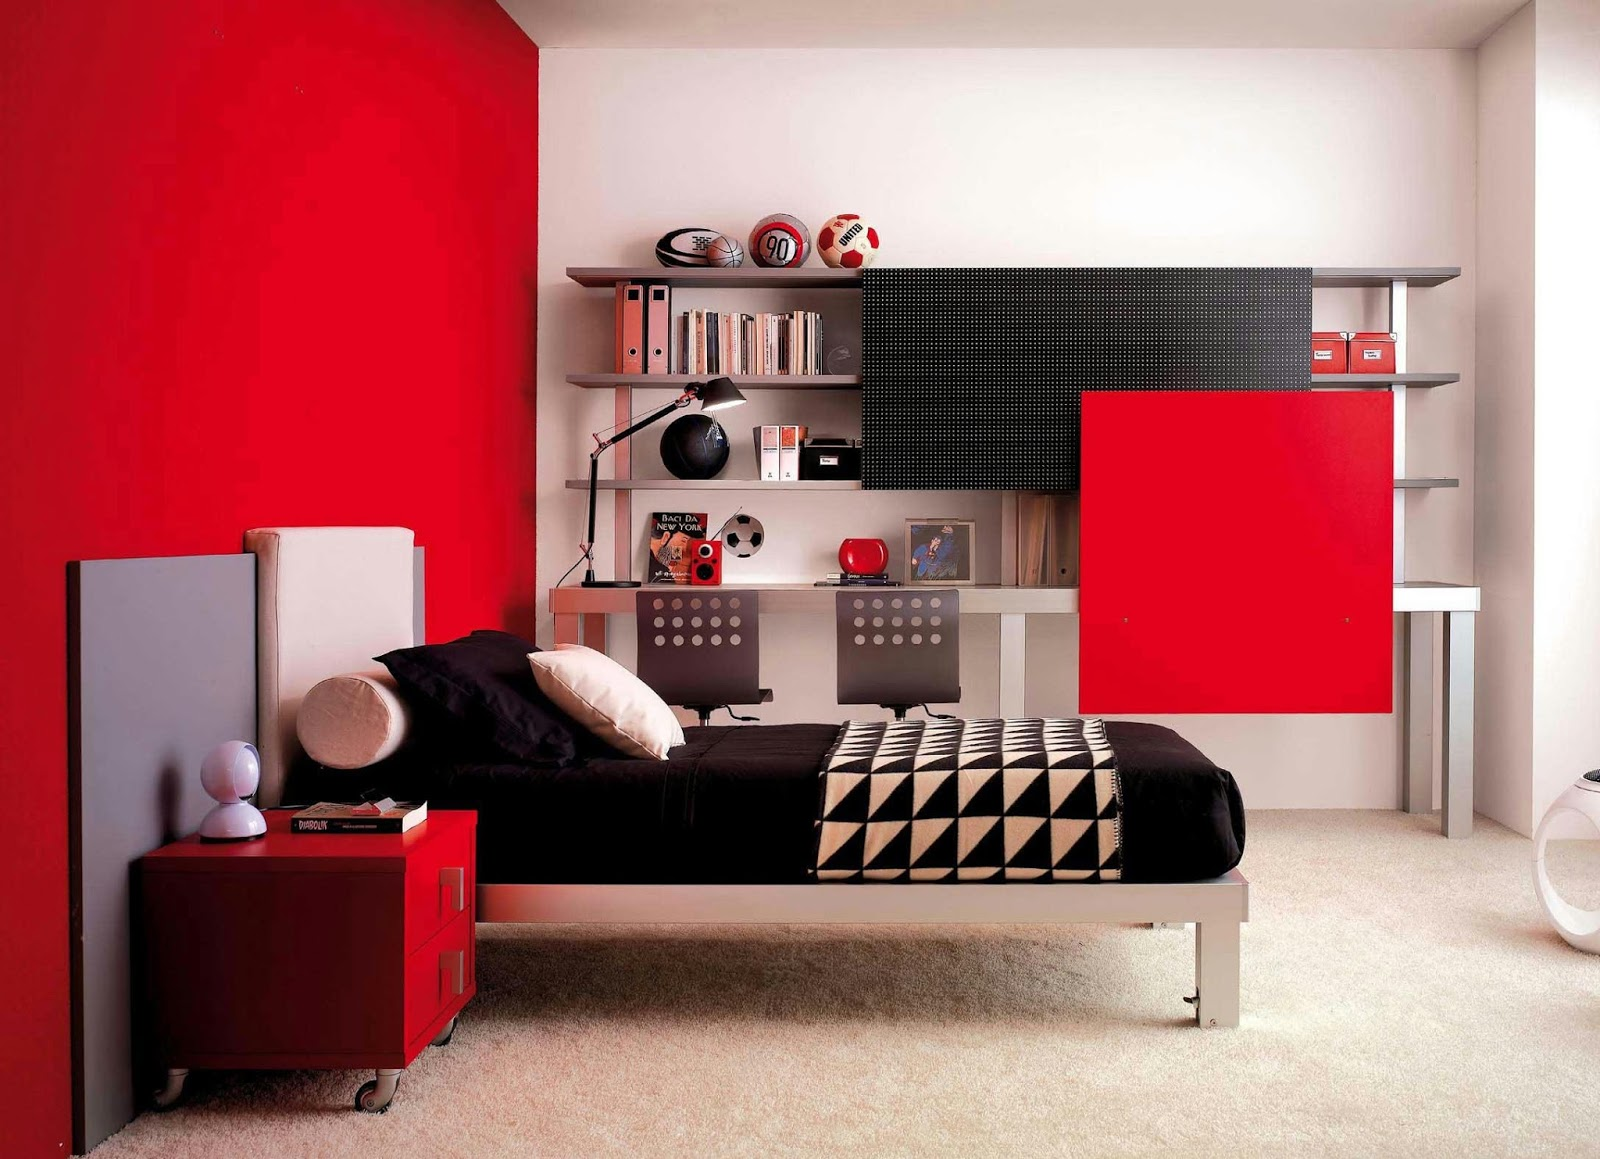 Cool Red And Black Bedroom Designs And Decor Ideas For